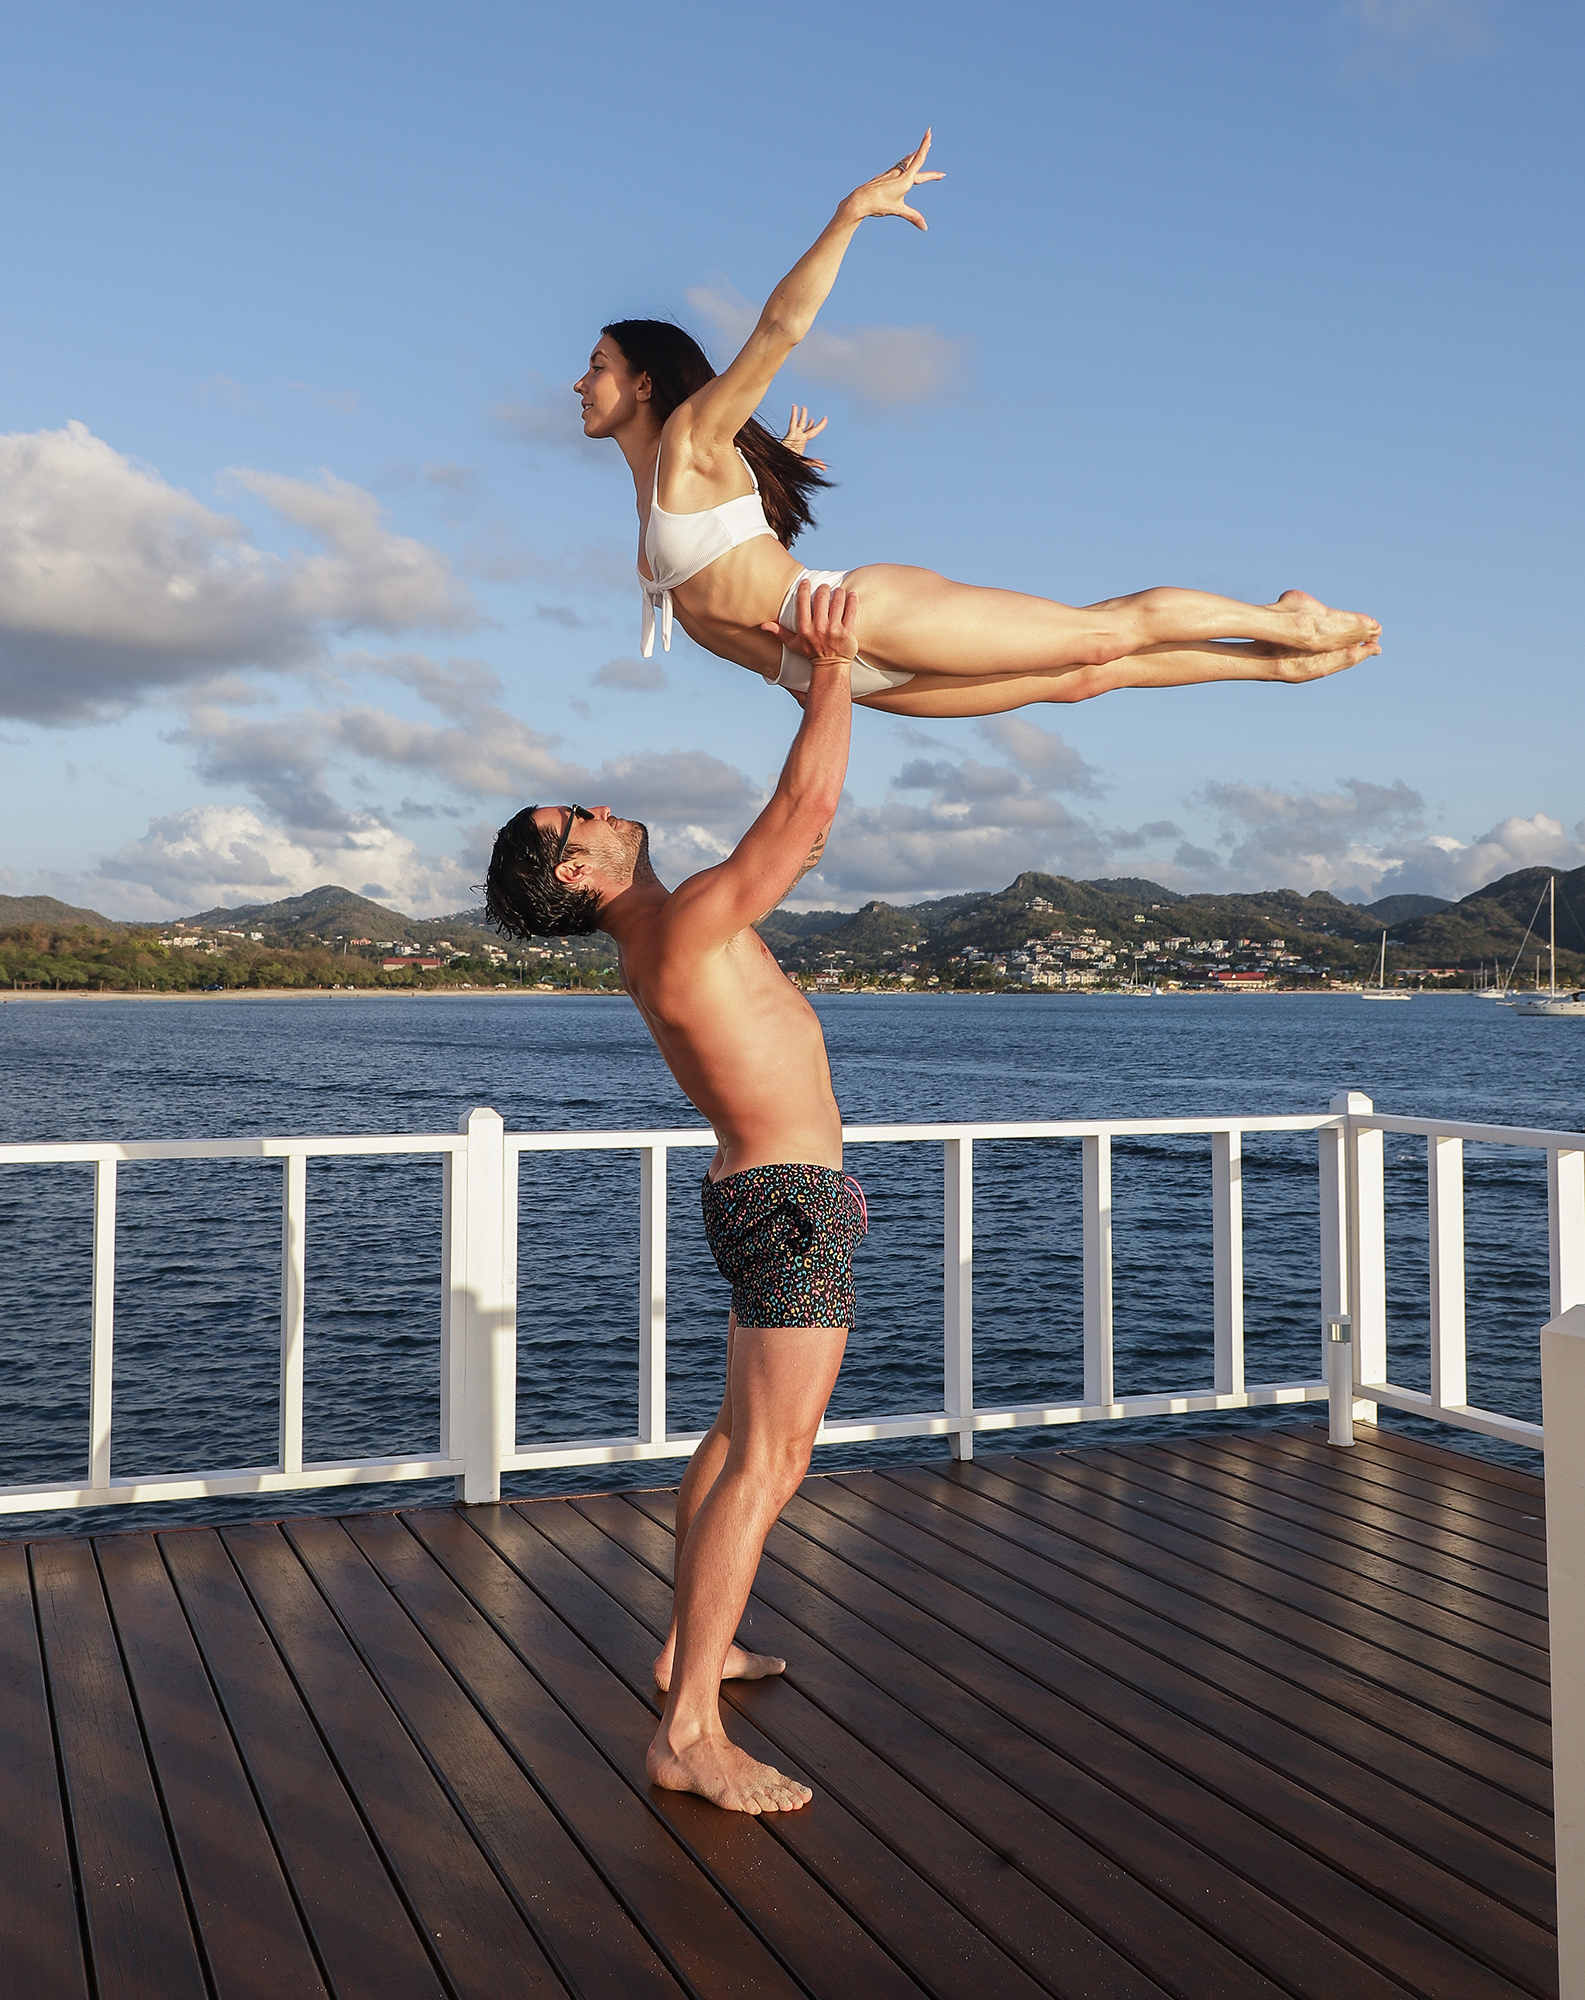 Val Chmerkovskiy Jenna Johnson Honeymoon - The pair pulled off a Dirty Dancing lift at the beautiful resort.